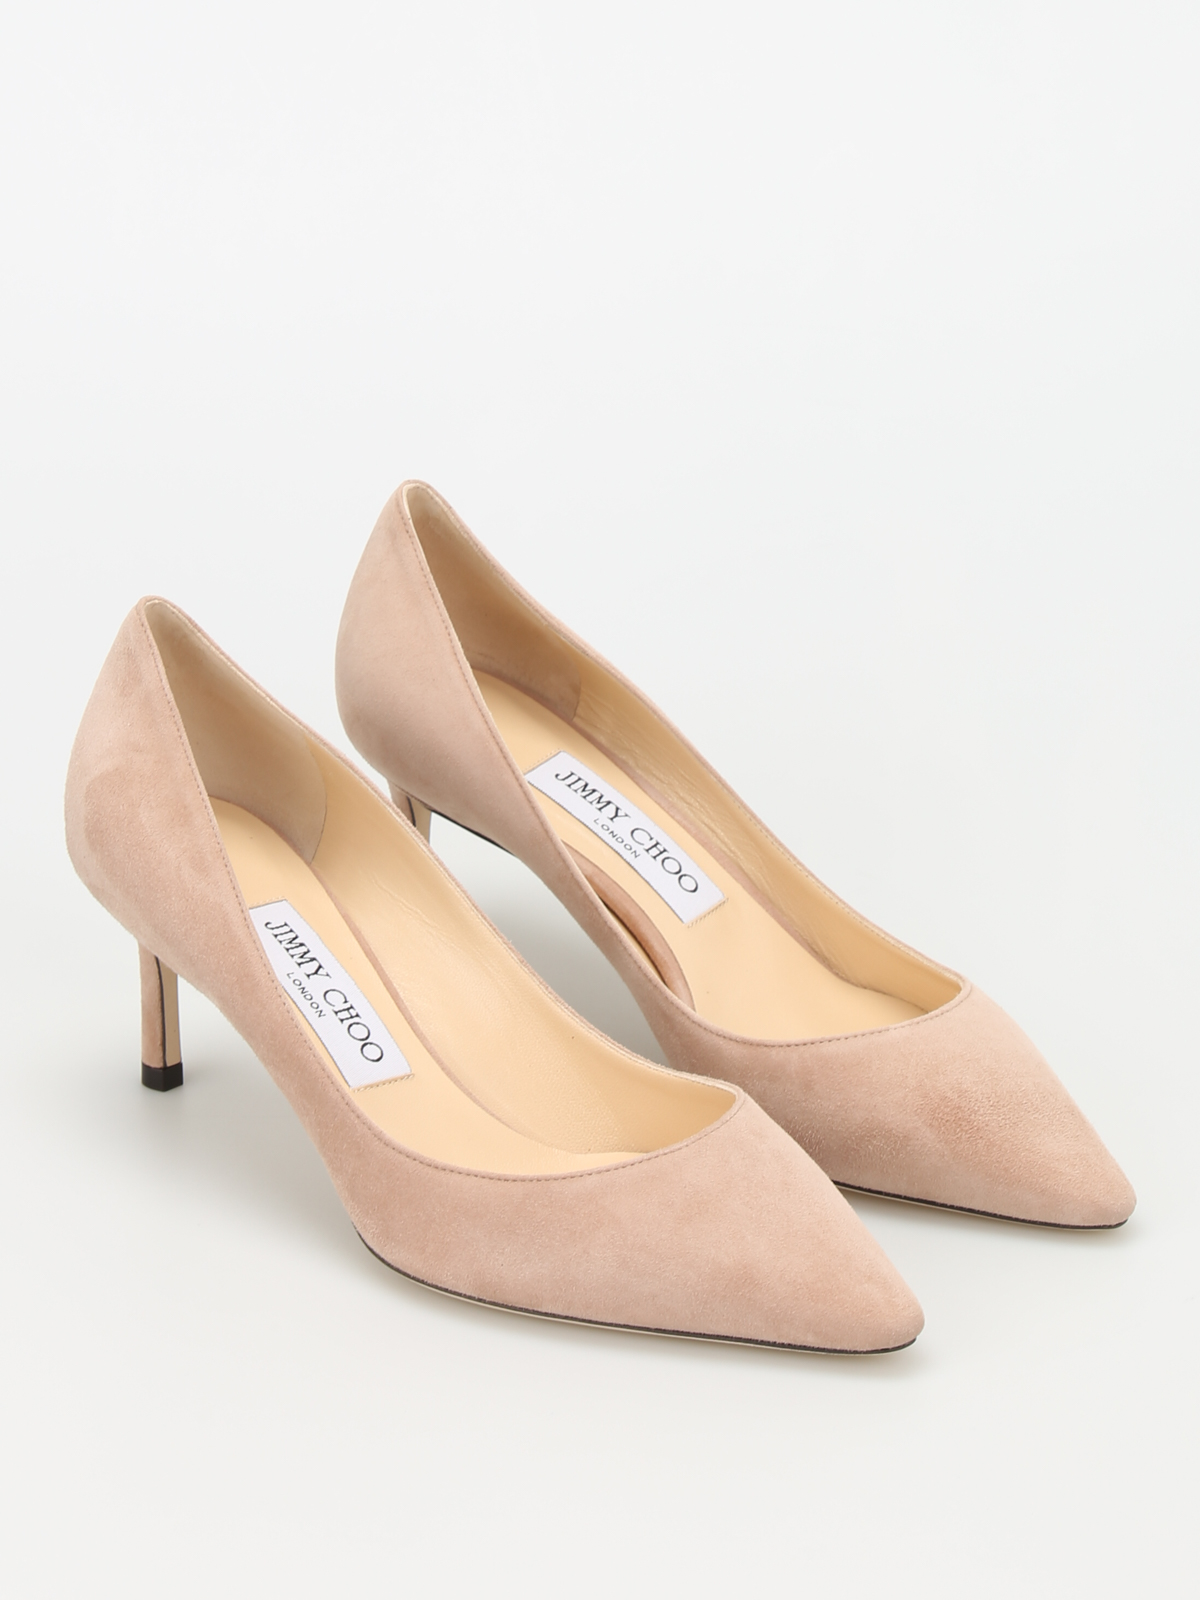 2b89f6f35 Jimmy Choo - Romy 60 suede pumps - court shoes - ROMY60SUEBALLETPINK